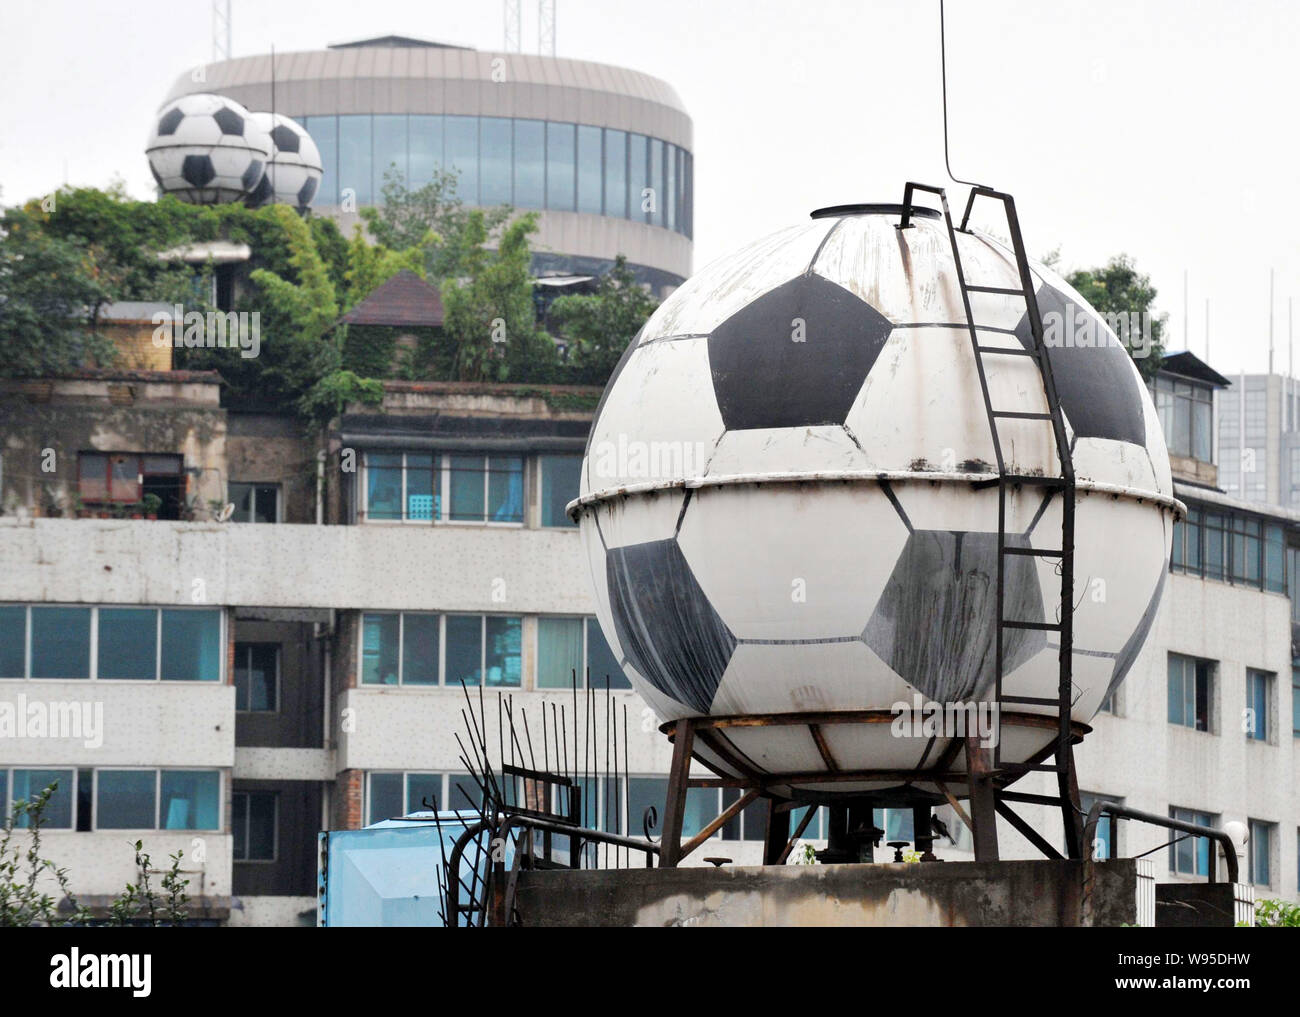 Football-shaped water tanks supplying tap water are pictured on the rooftop of residential apartment buildings in Guiyang city, southwest Chinas Guizh Stock Photo